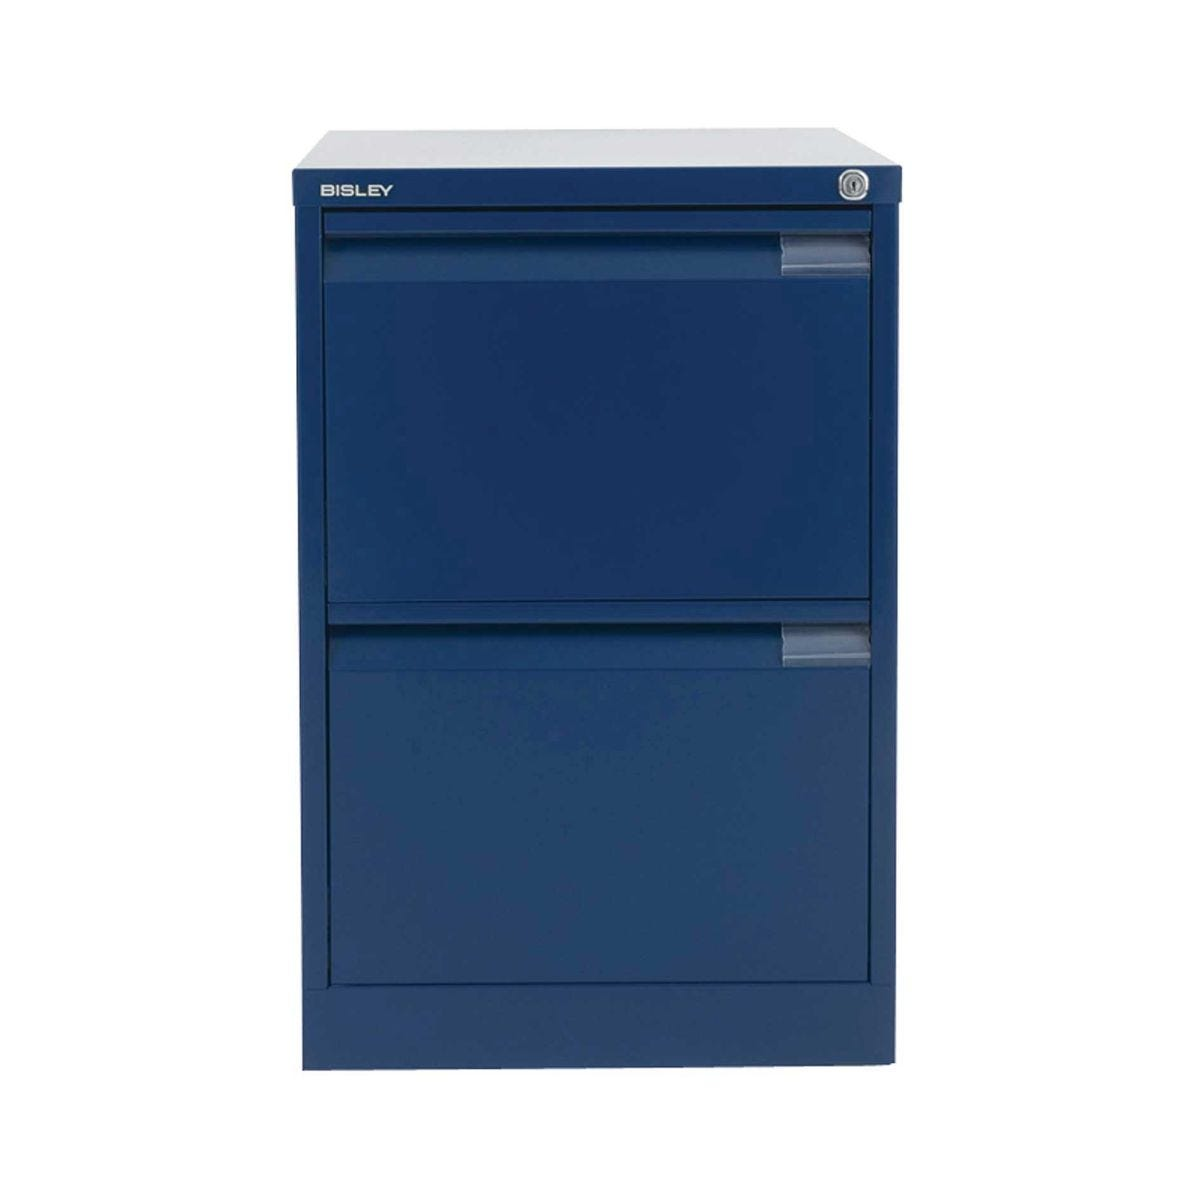 Bisley Filing Cabinet BS2E 2 drawer H711xW470xD622mm Steel, Oxford Blue